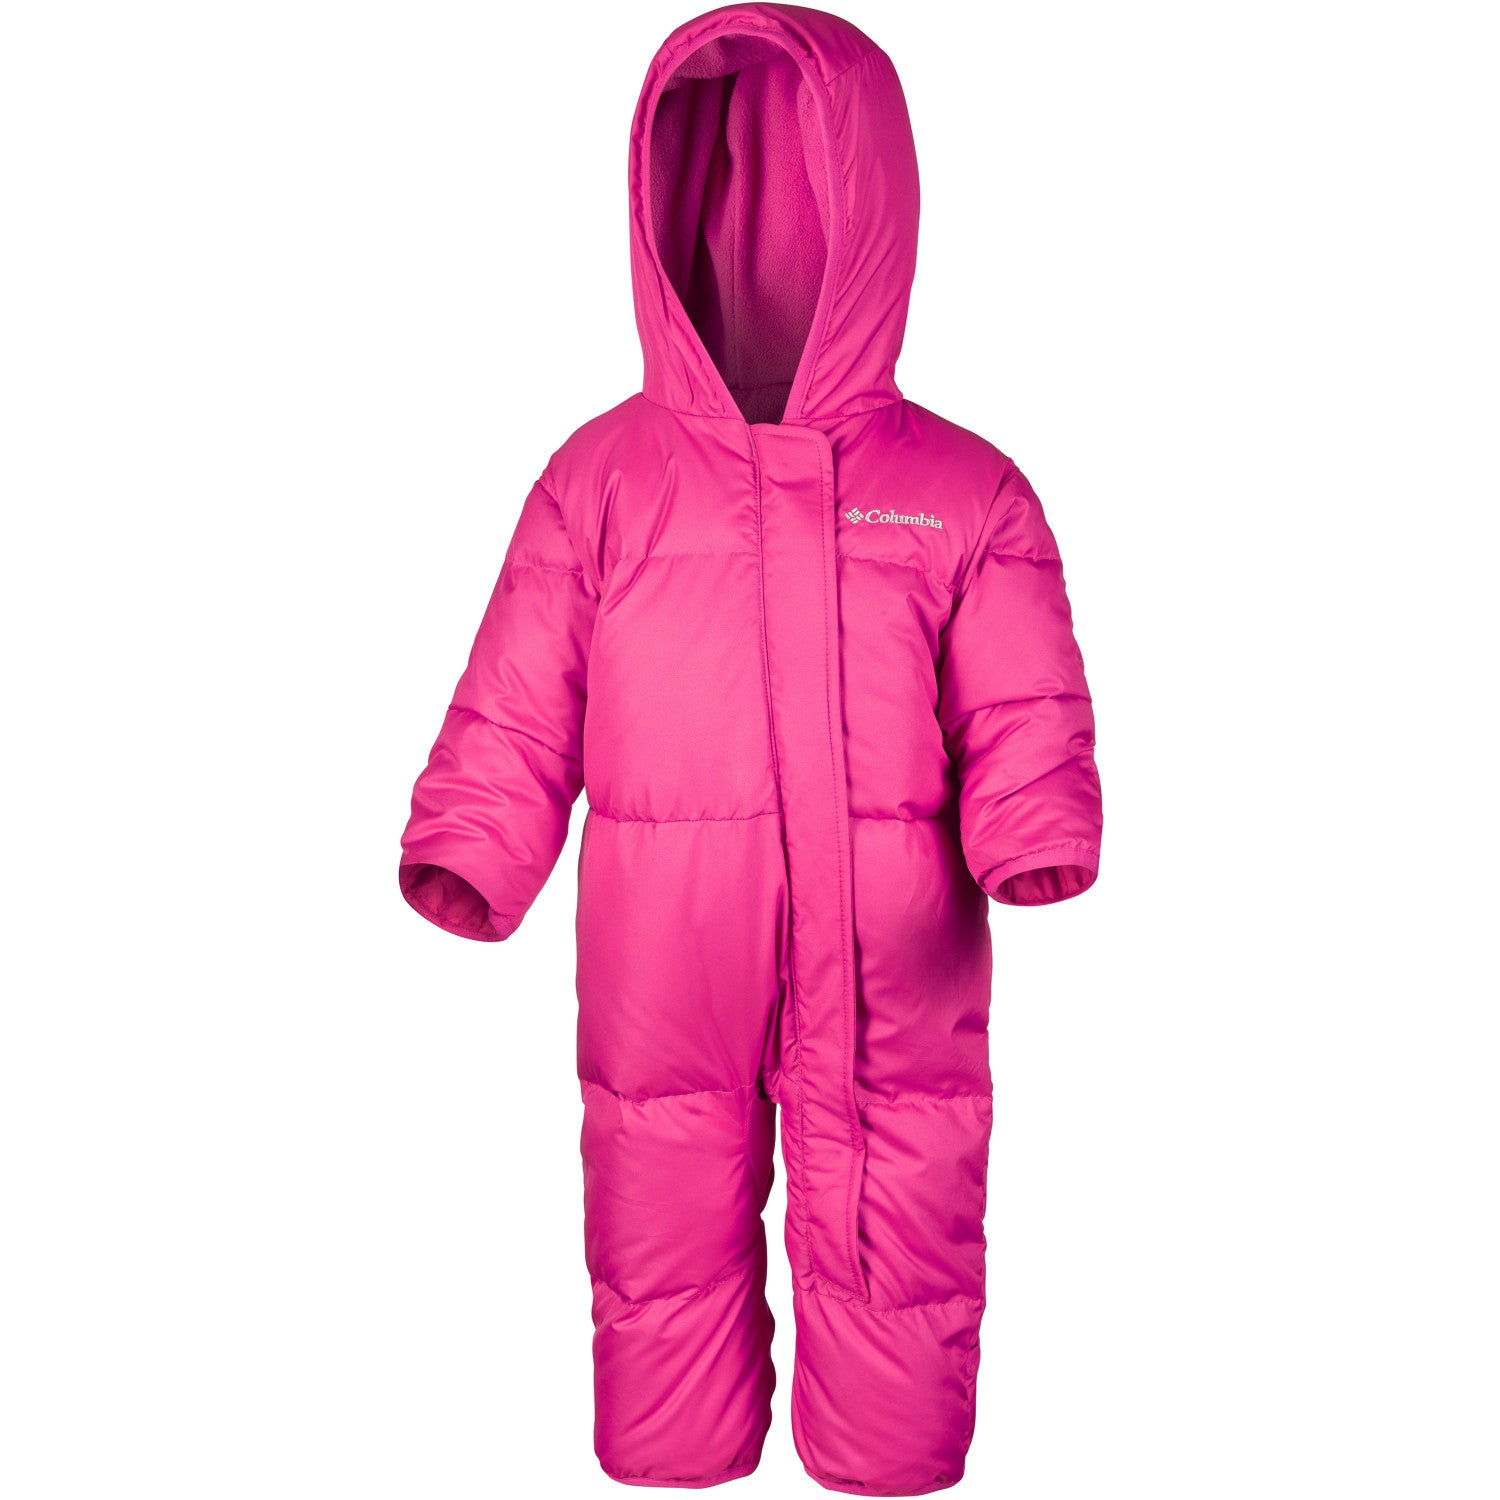 a4fb4dae4 Columbia Snuggly Bunny Bunting Toddler Kids Snowsuit Pink ~ Pink All Sizes